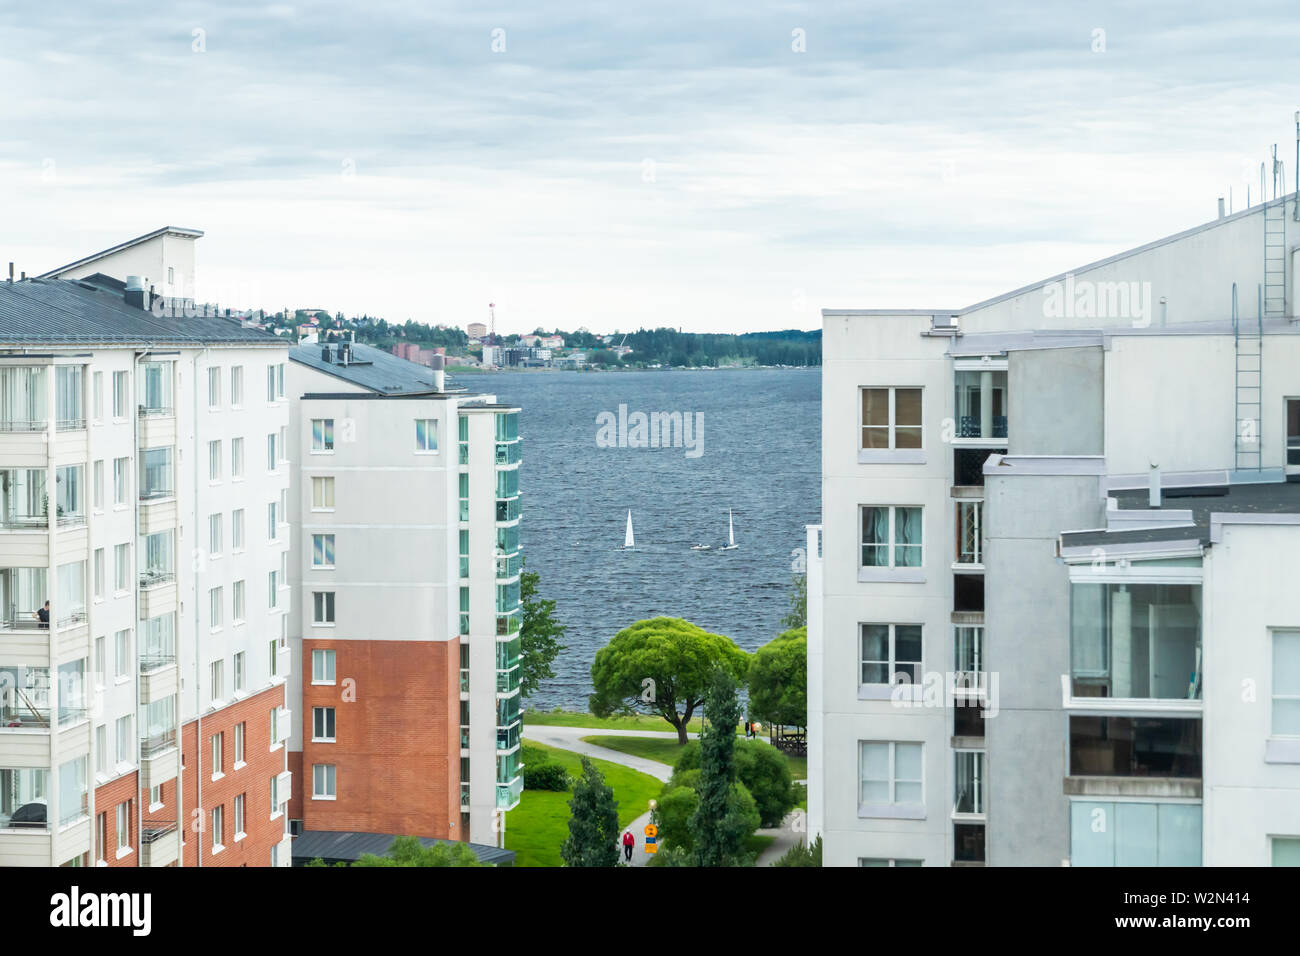 Tampere, Finland - June 25 2019: City view and boats on lake Nasijarvi - Stock Image